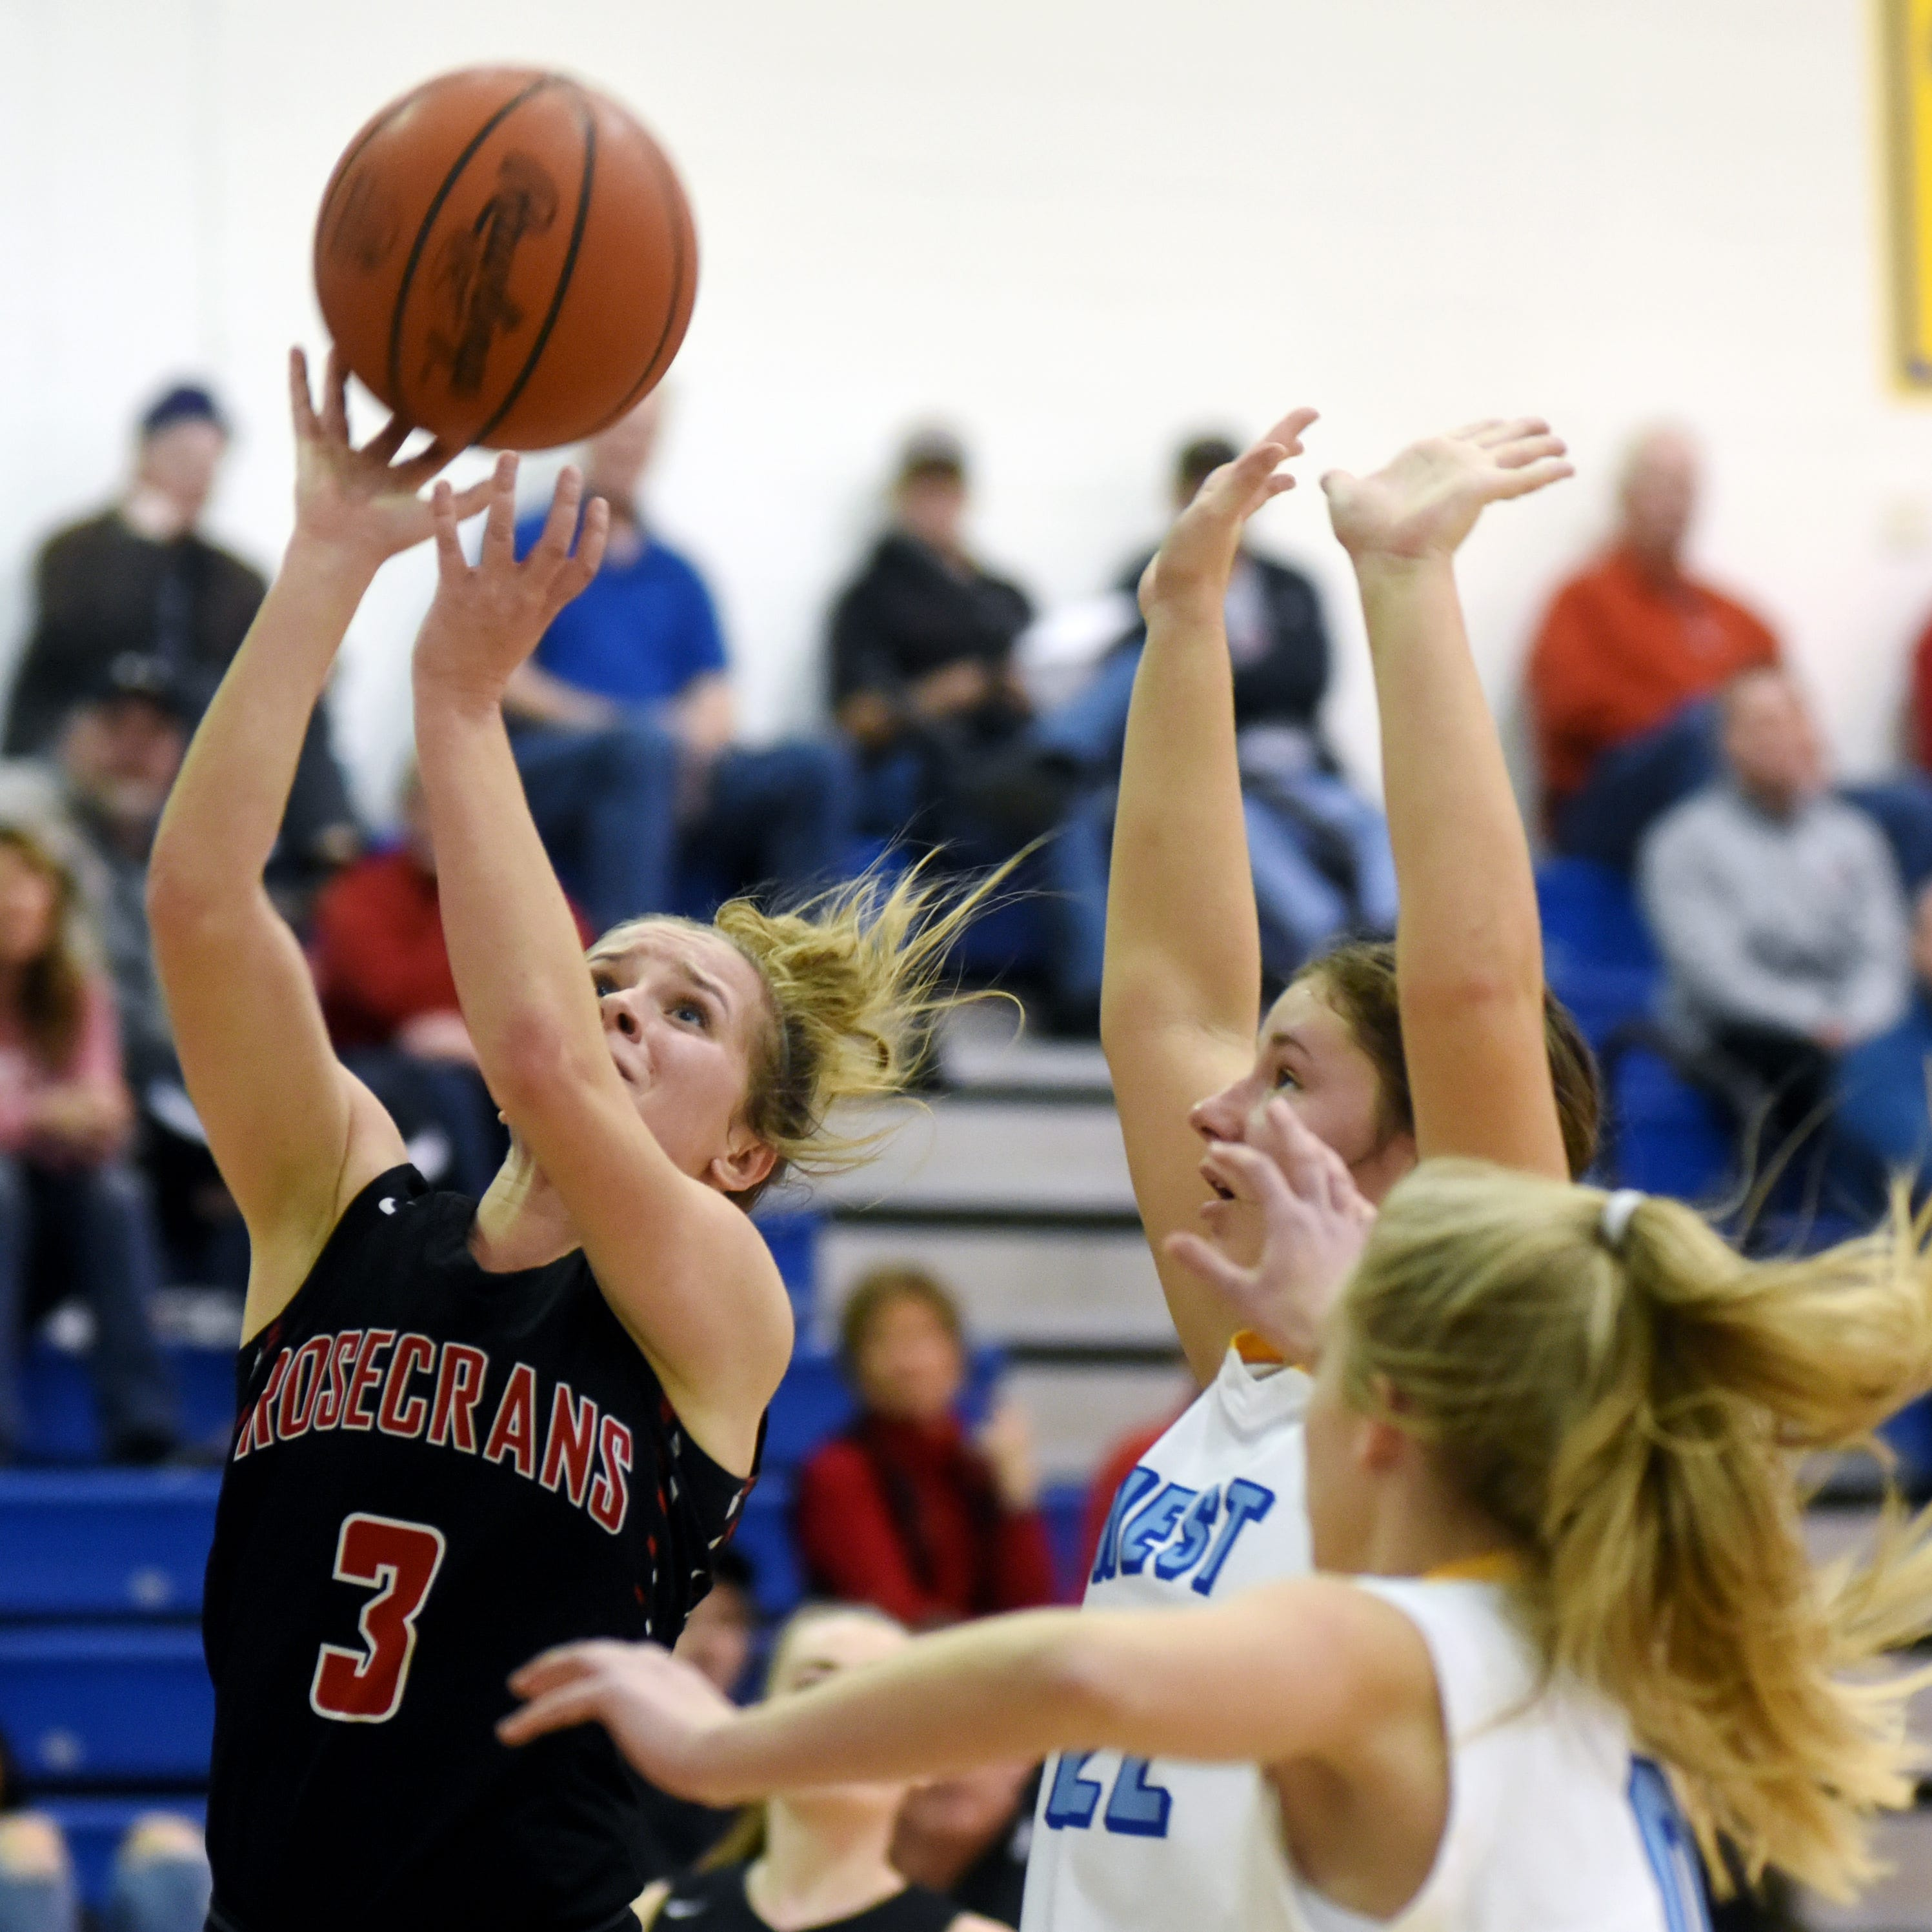 Rosecrans fends off feisty West M